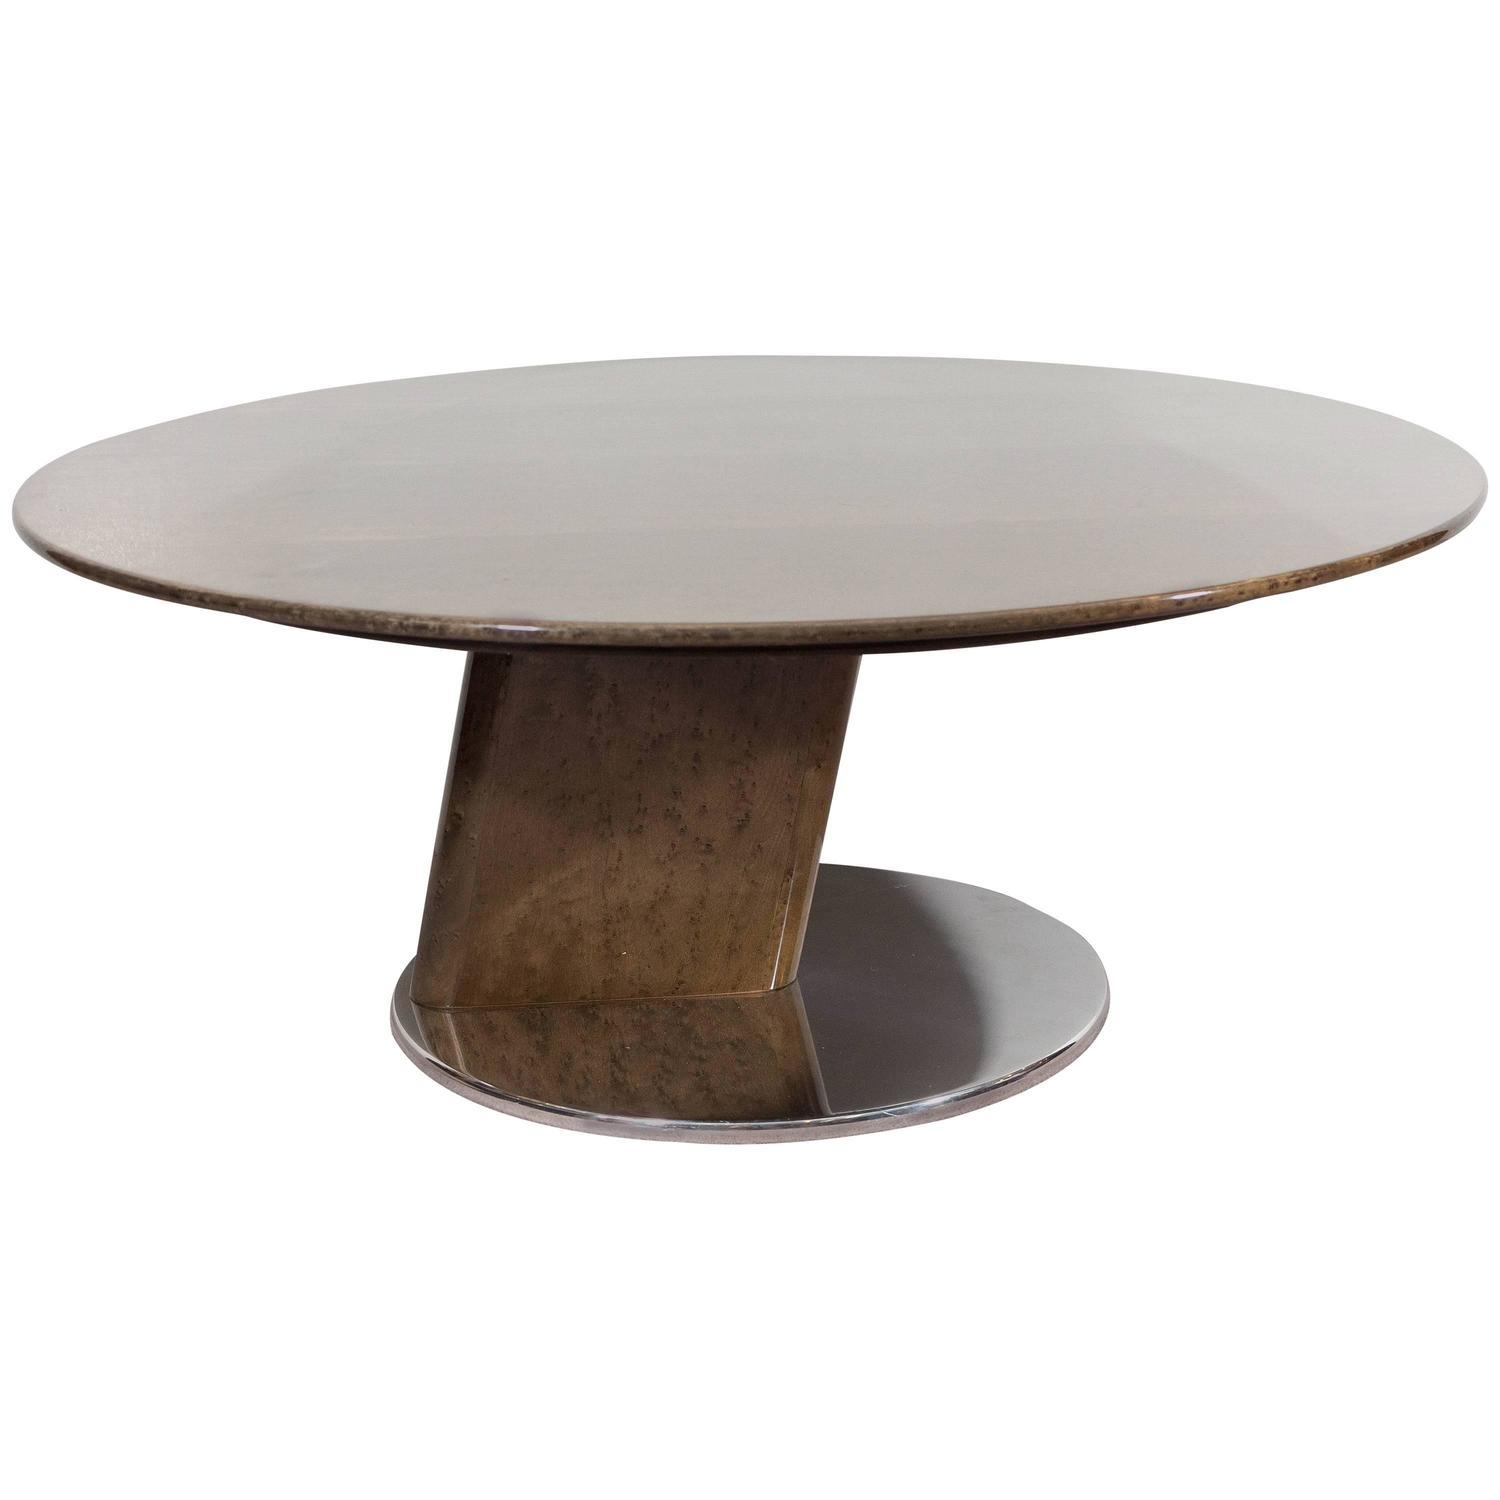 A Saporiti Modernist Coffee Table in Lacquered Birdseye Maple on